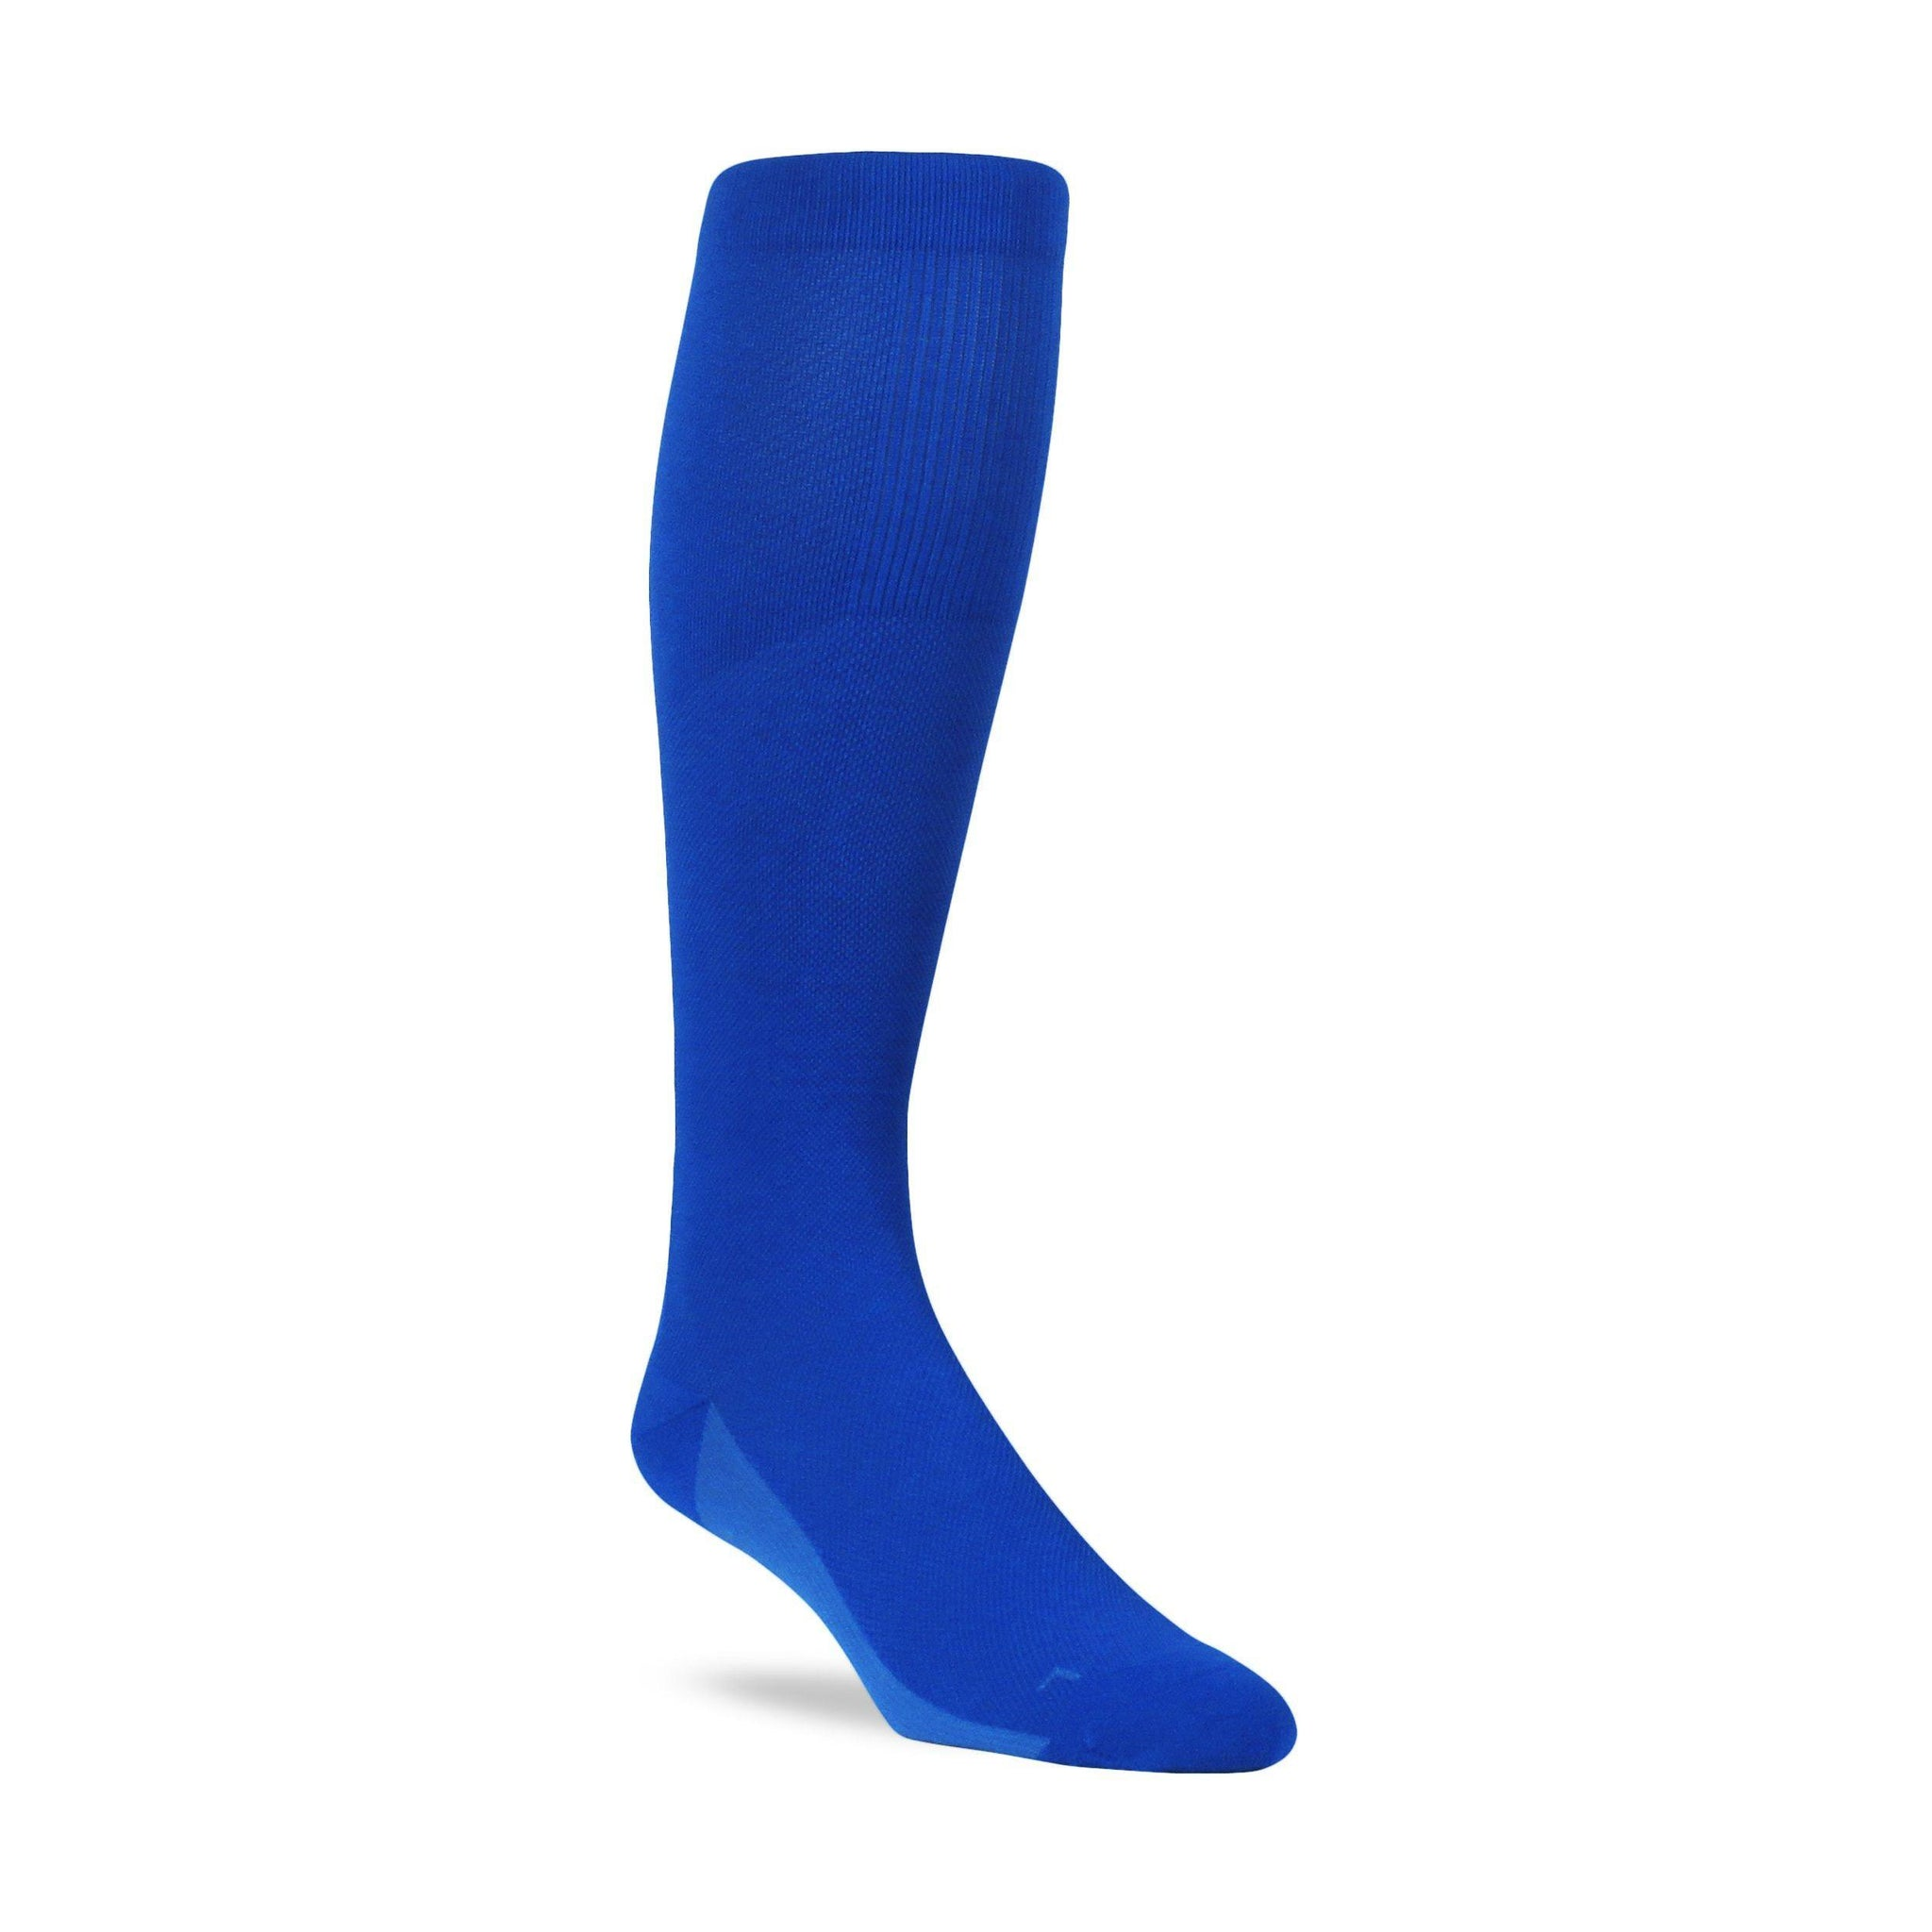 Endurance OTC Compression Socks - Zaffre Blue/Steel Blue